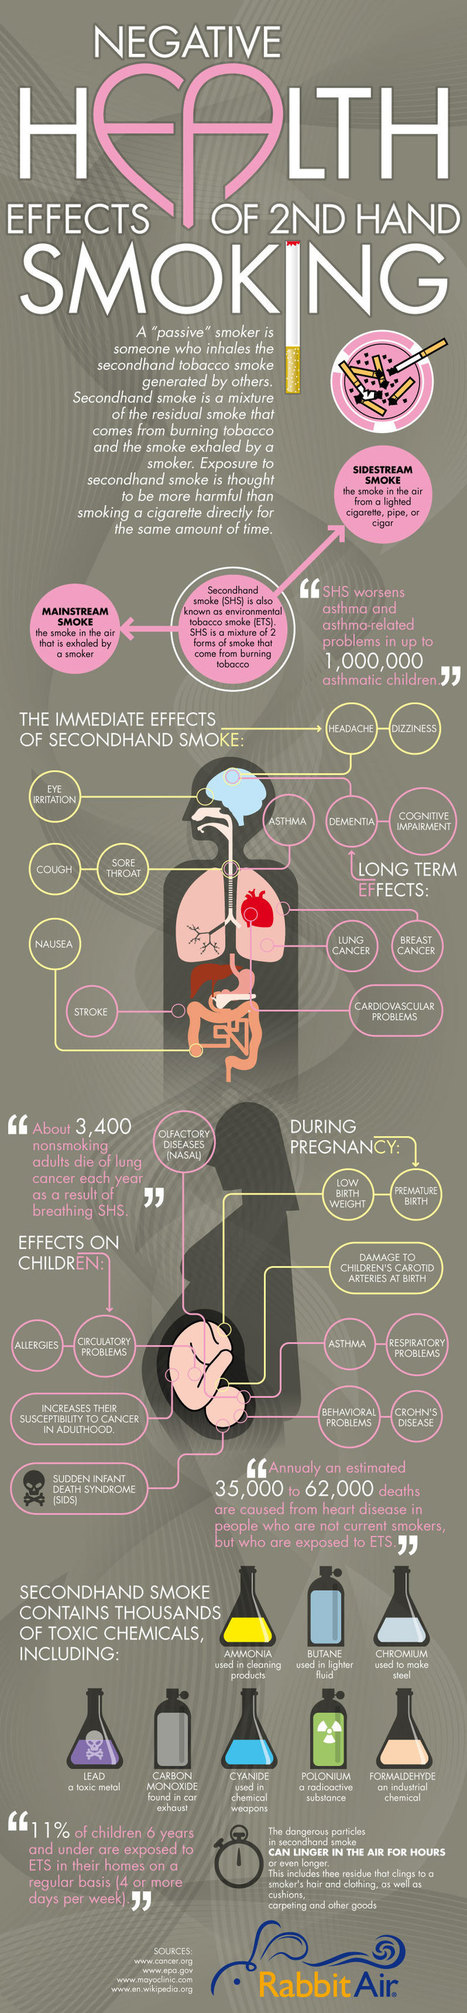 Secondhand Smoke Infographic | Effects of Smoking | Scoop.it